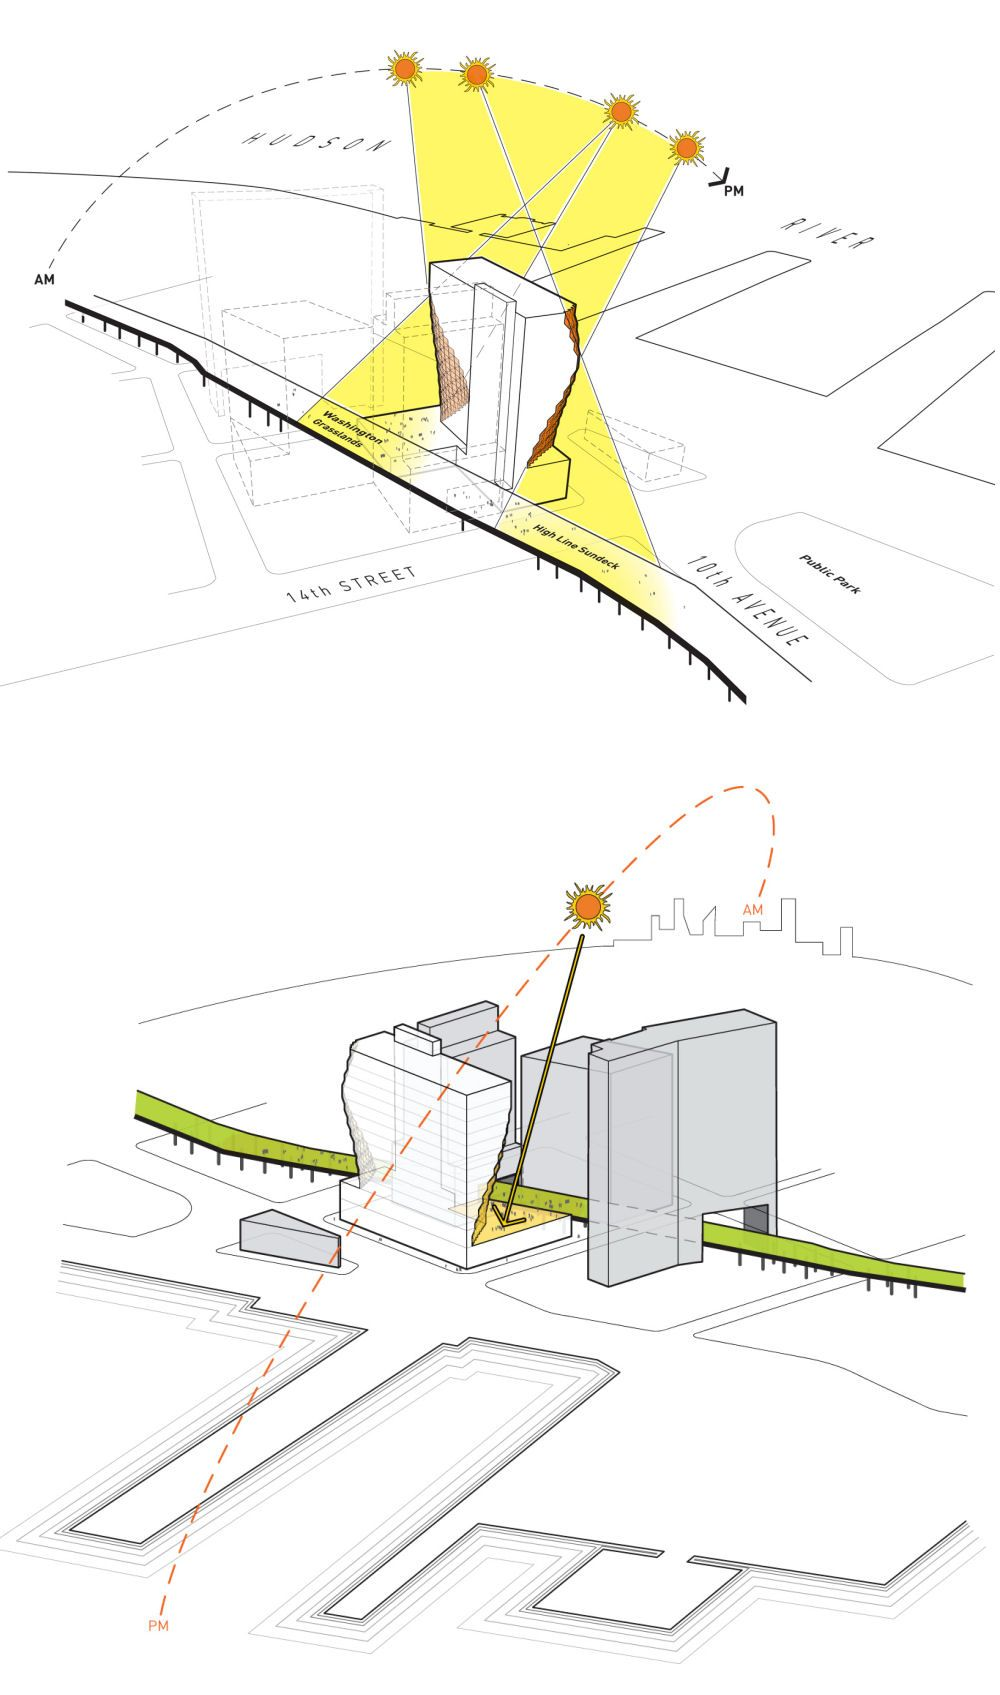 Solar Carve Tower By Studio Gang Architects In New York United States Architecture Concept Diagram Diagram Architecture Concept Architecture